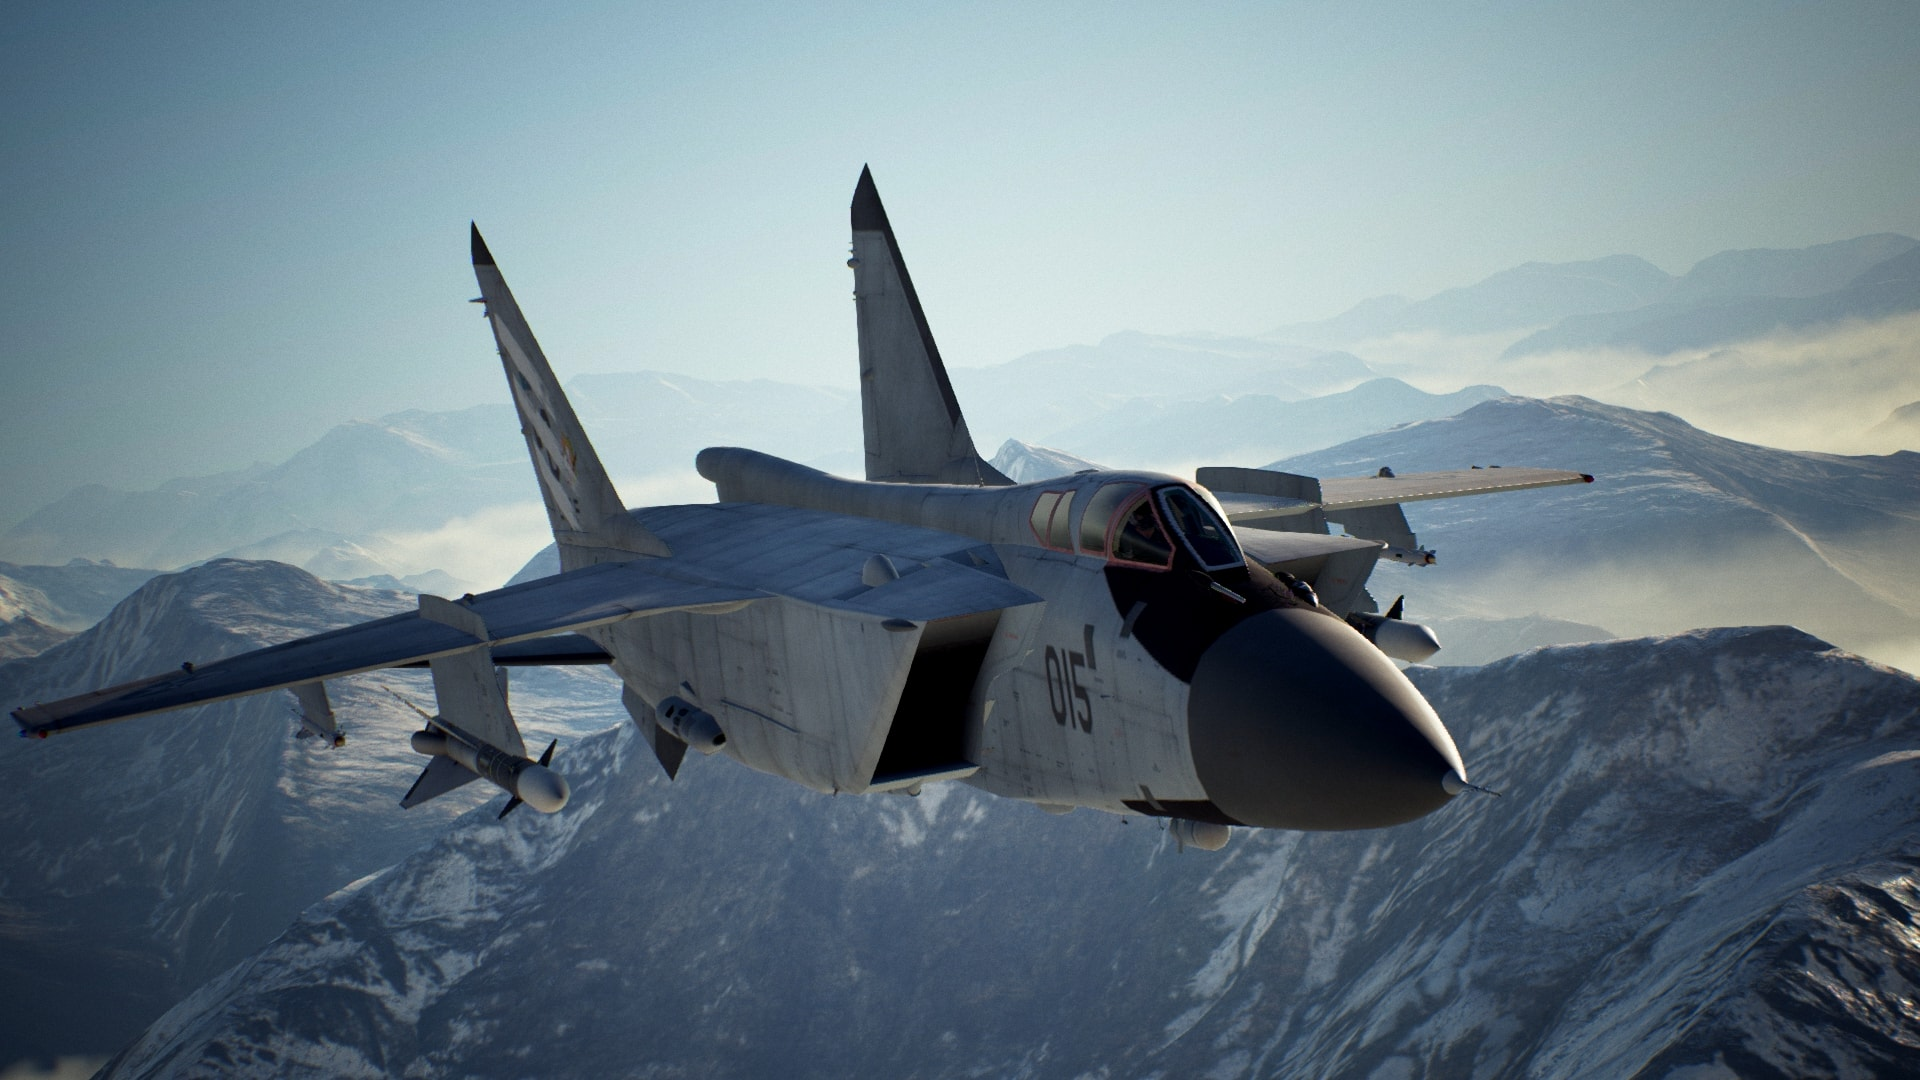 Ace combat 7: Skies Unknown release date announced for PC